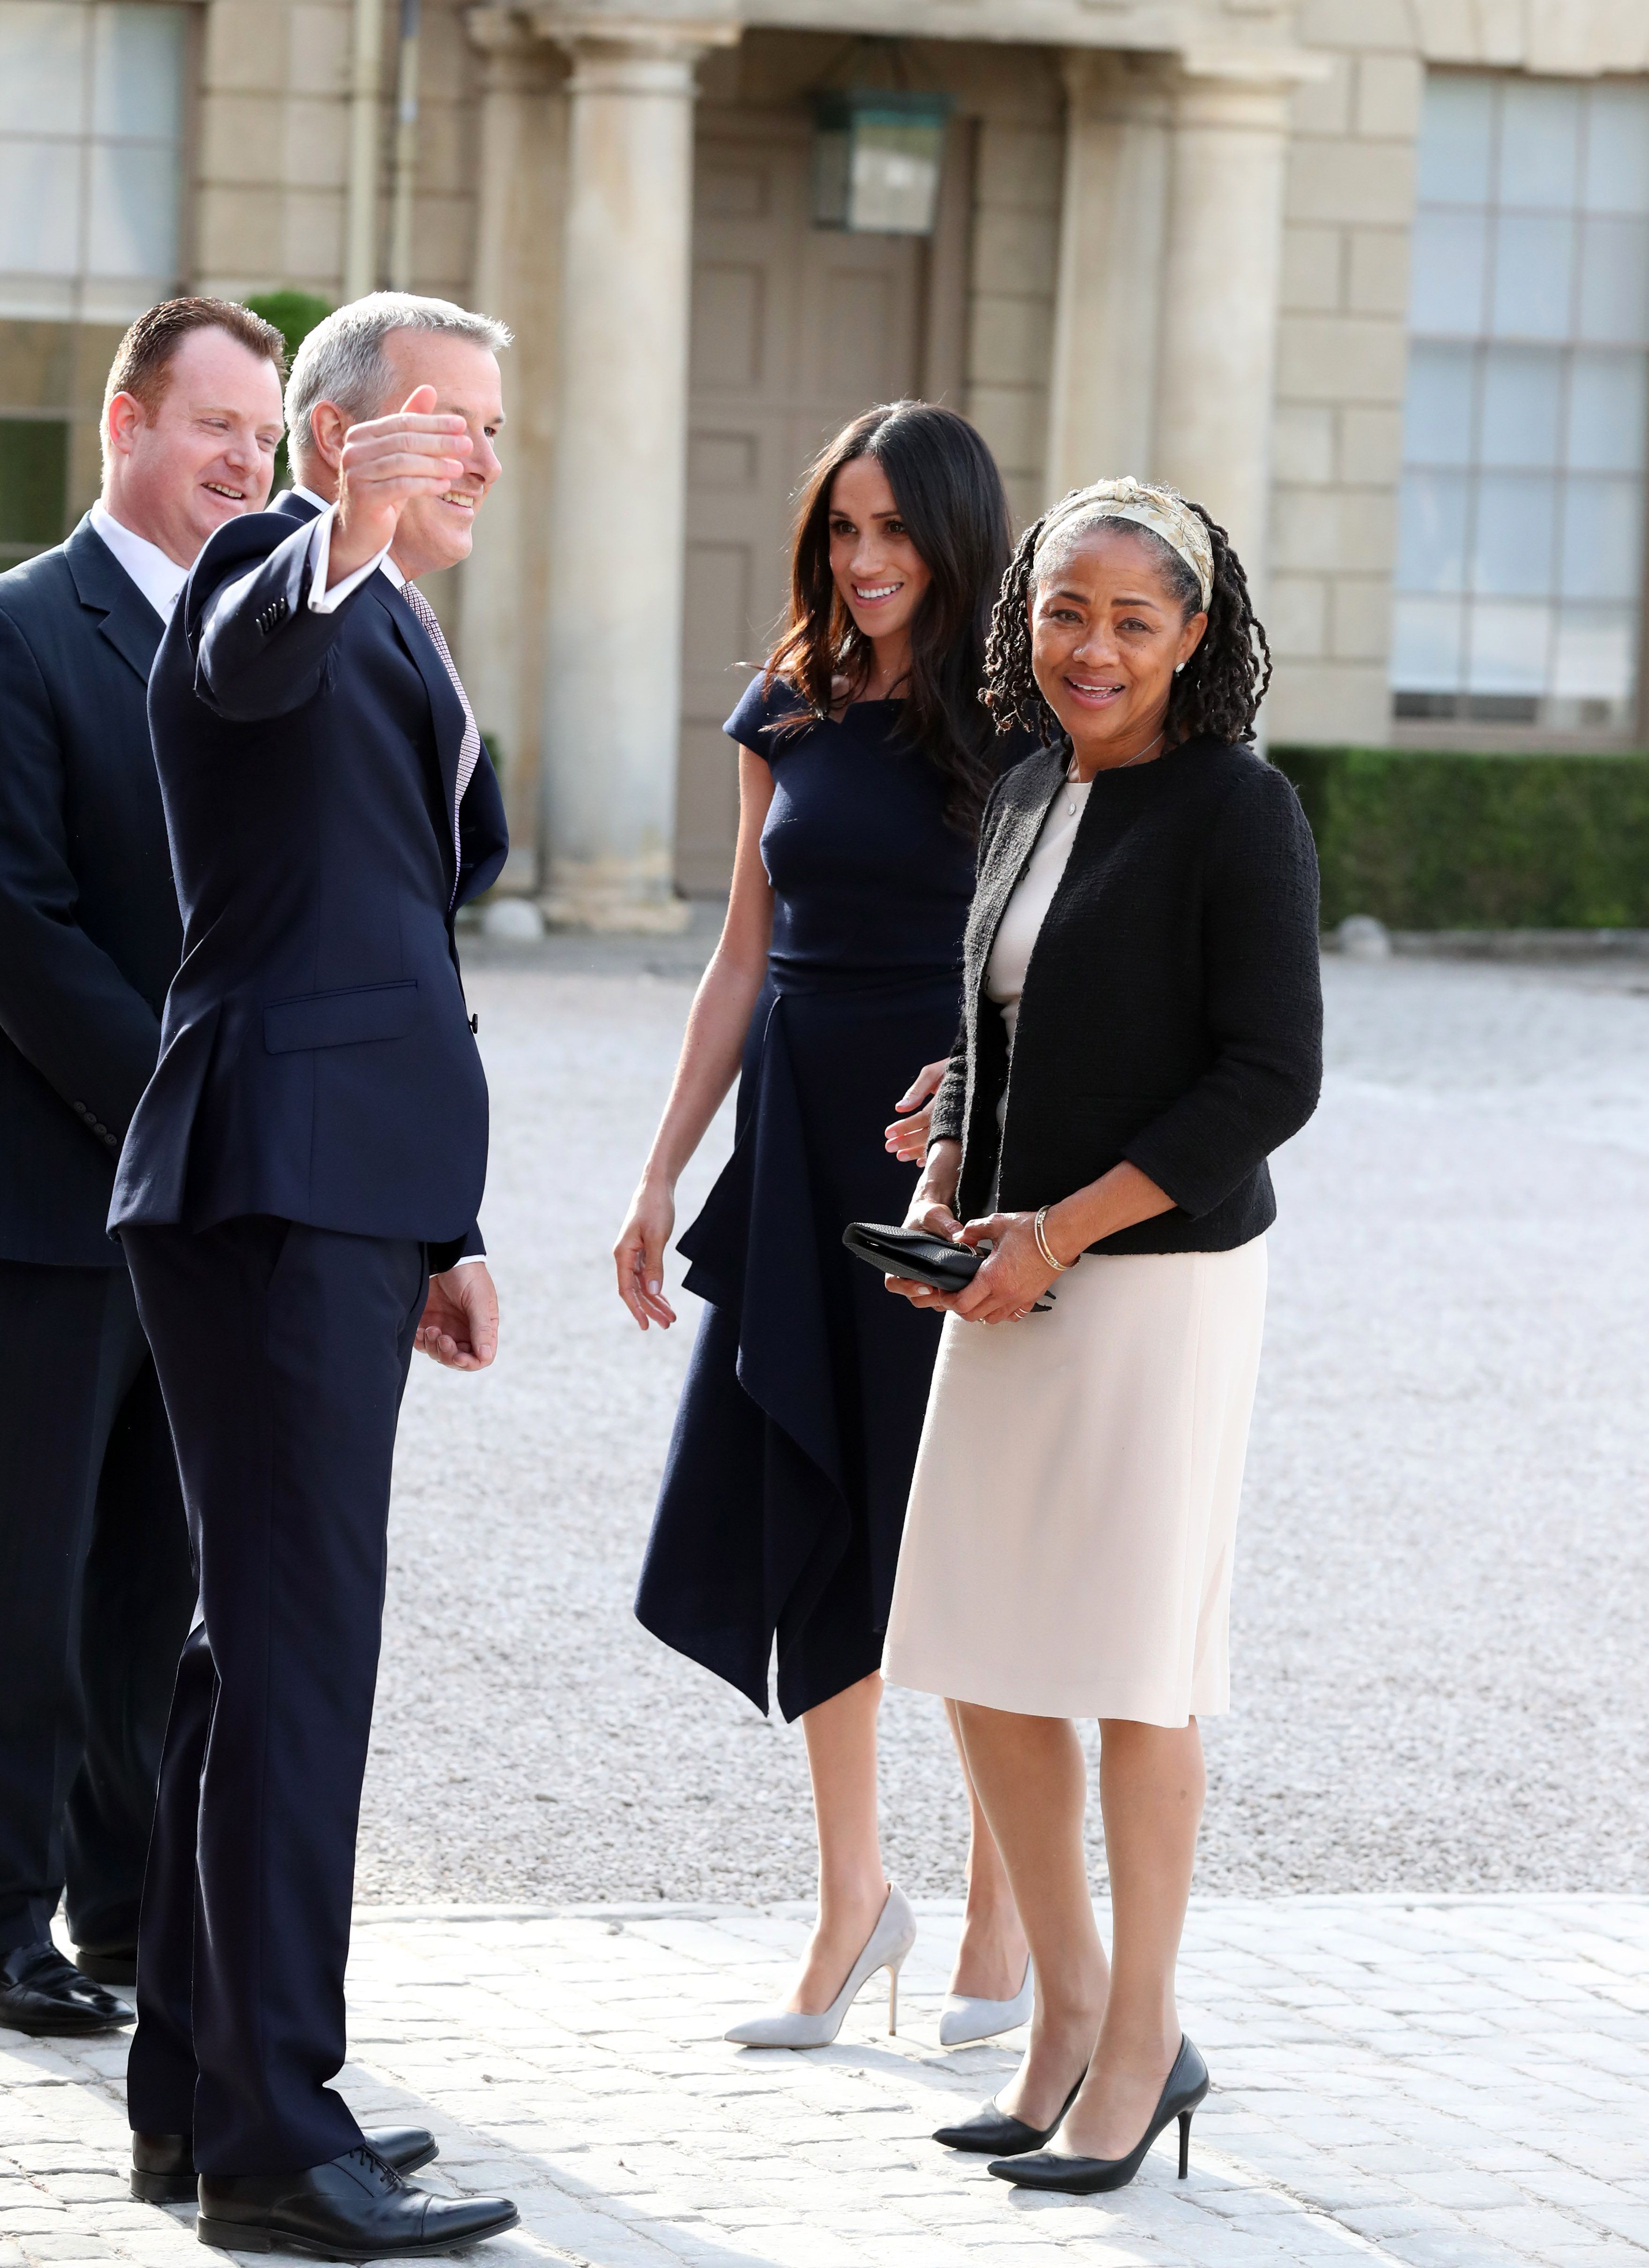 Meghan Markle's Mother Doria Ragland Has Arrived in London Ahead of the Birth of Baby Sussex